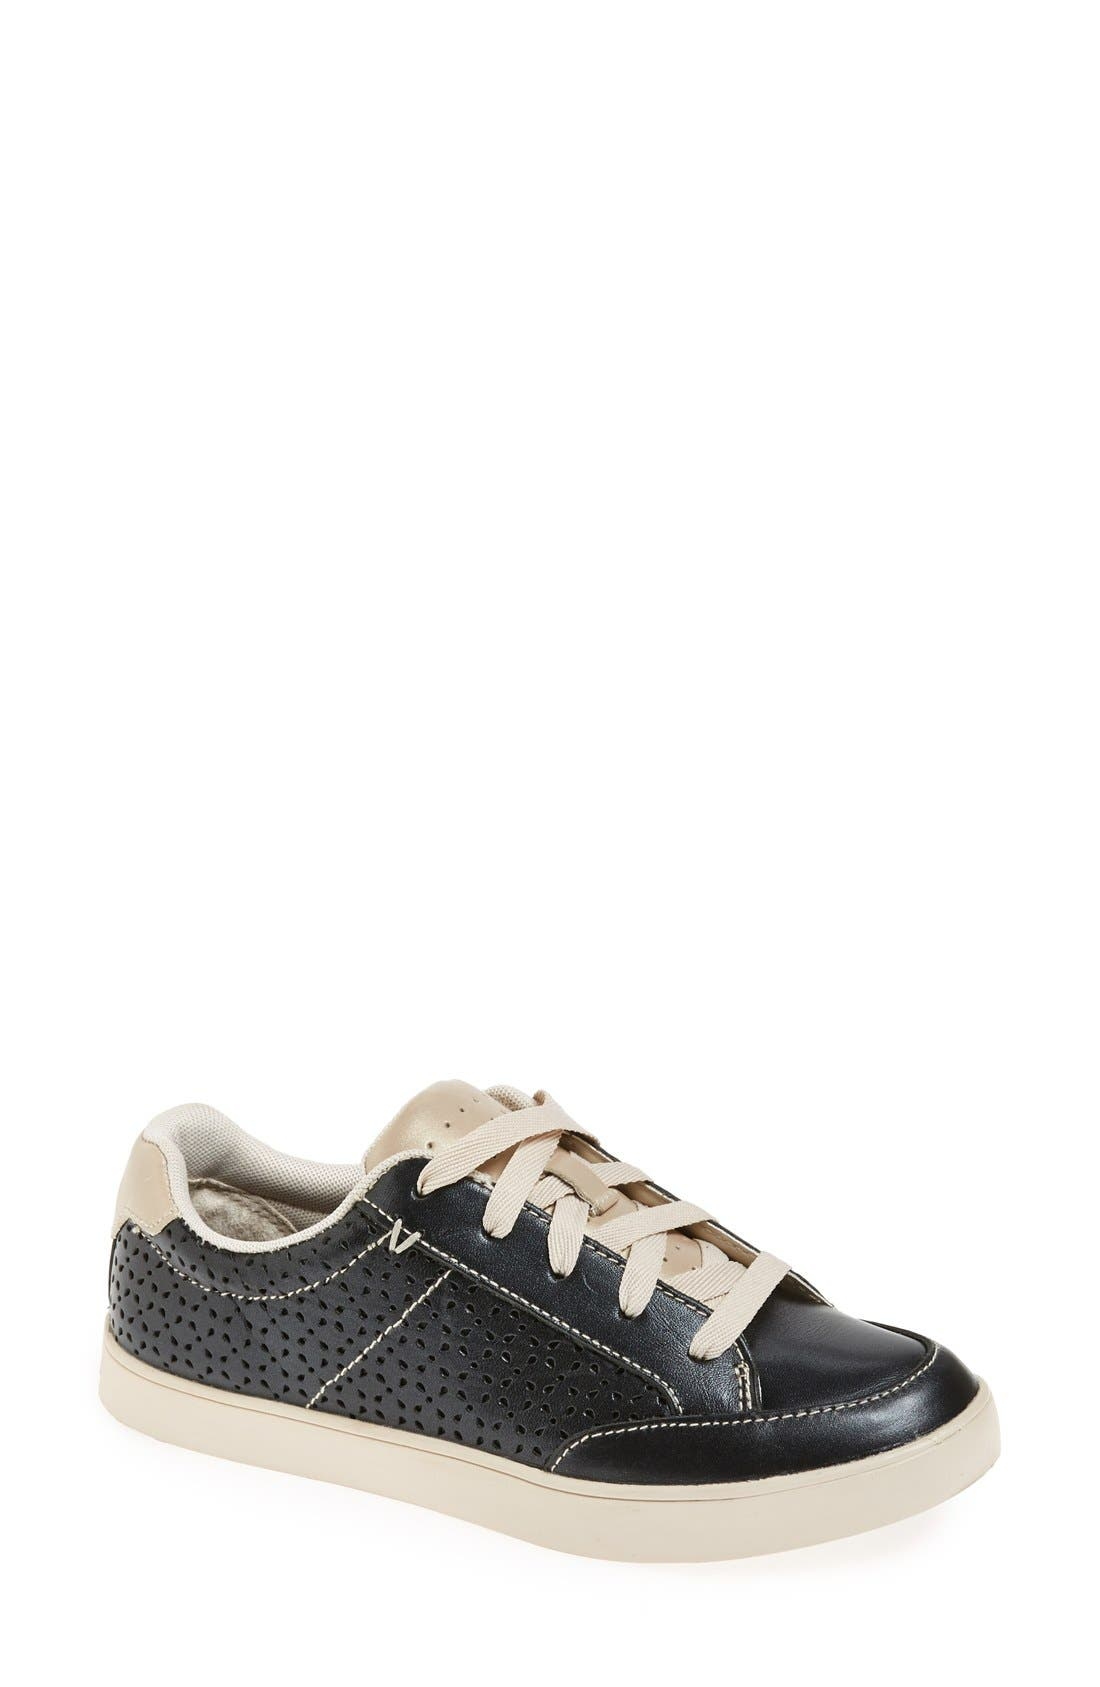 Dr. Scholl's Original Collection 'Sterling' Sneaker (Women)